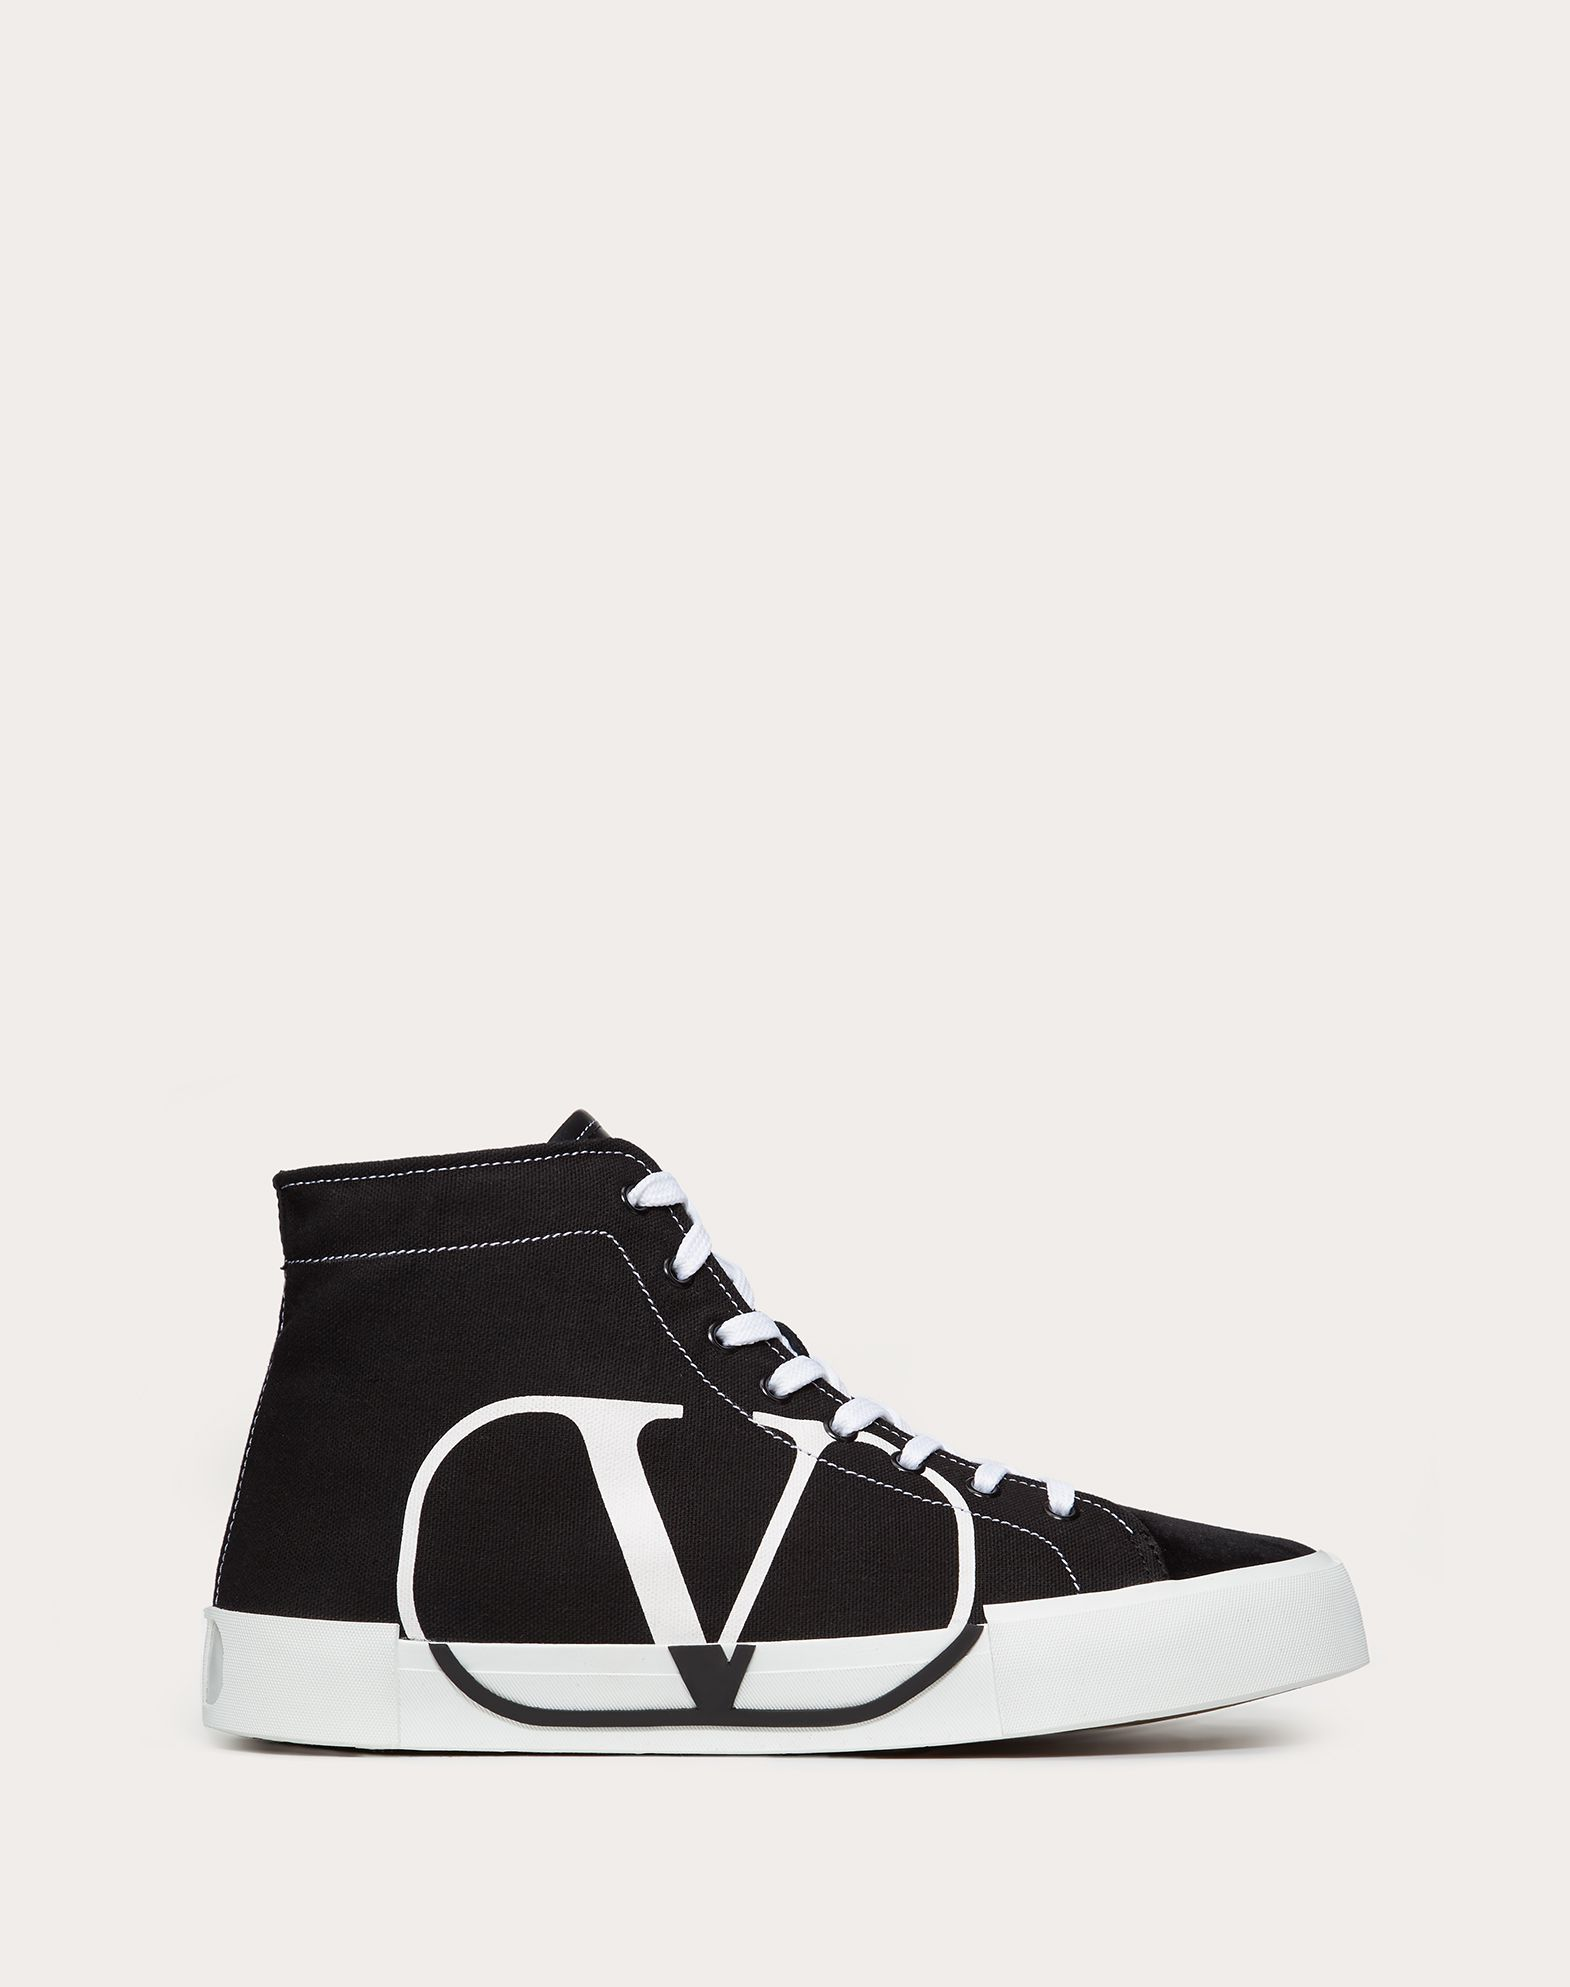 TRICKS HIGH-TOP CANVAS AND SUEDE SNEAKER